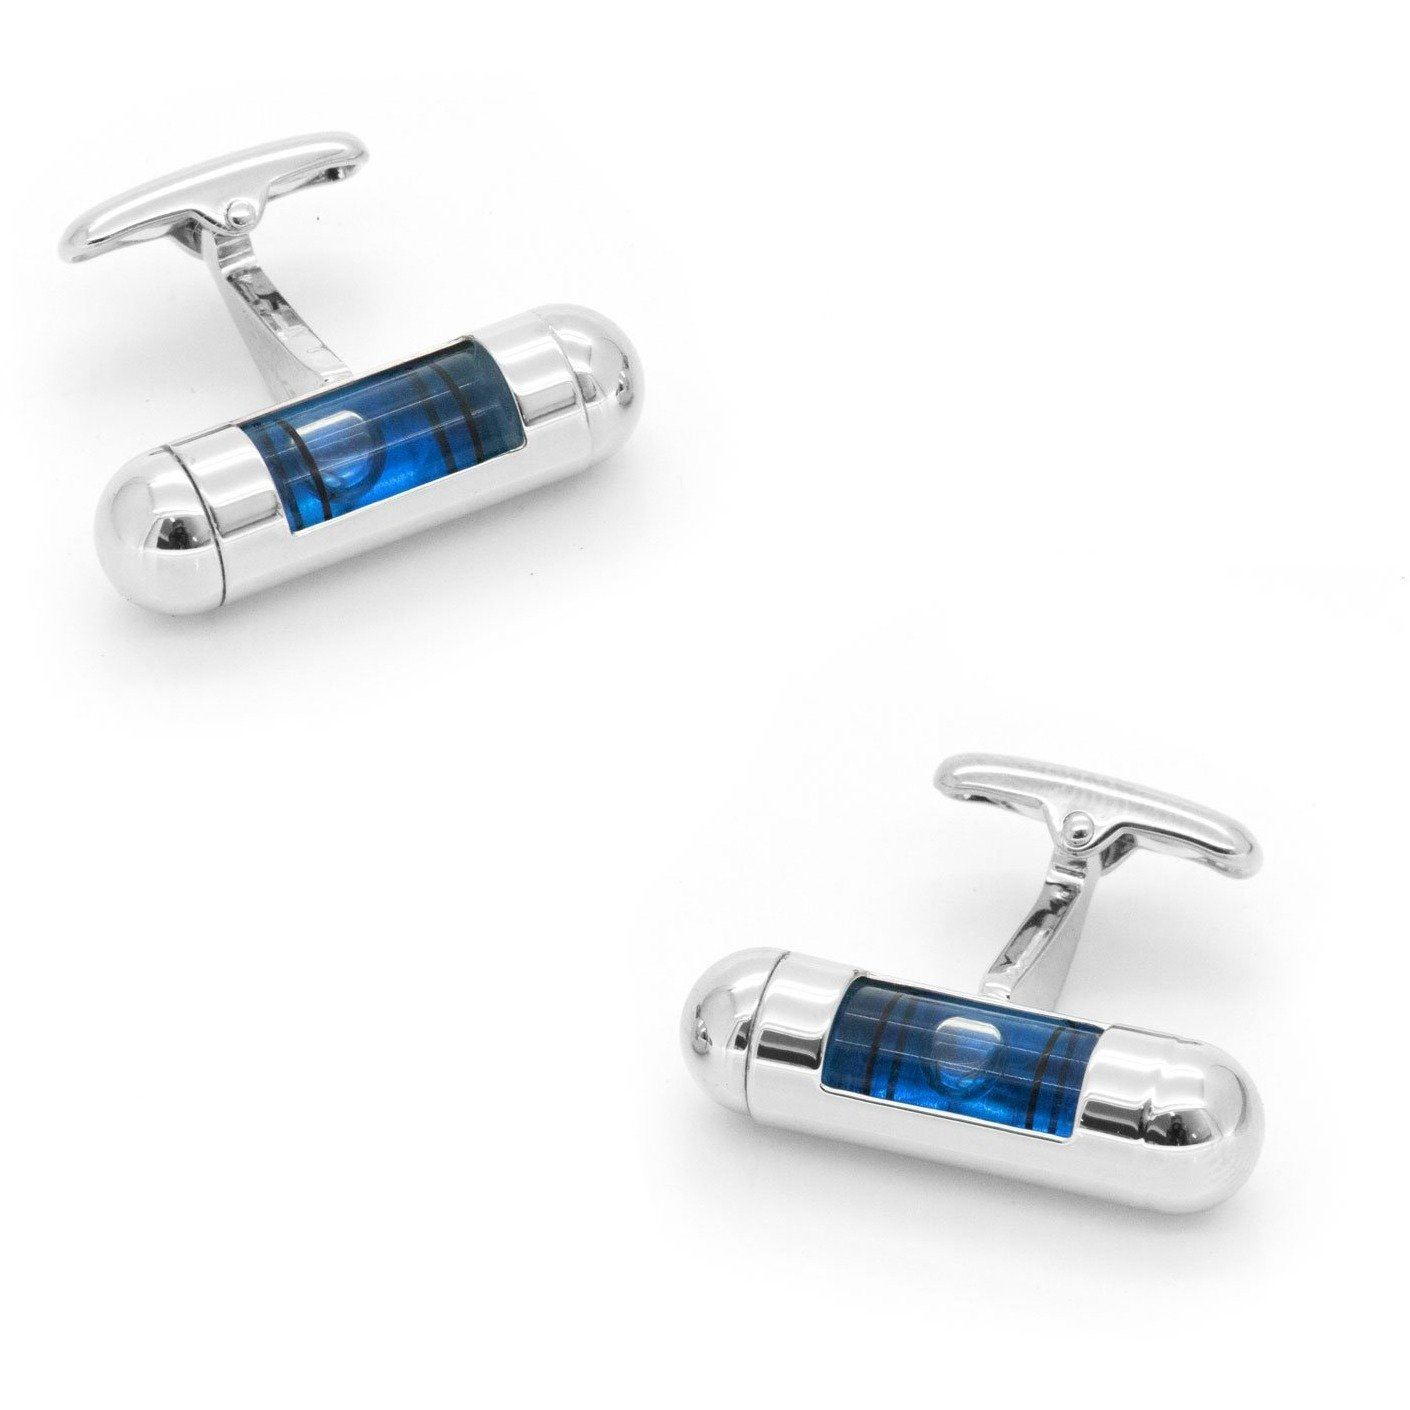 Blue Spirit Level Cufflinks, Novelty Cufflinks, Cuffed.com.au, CL9031, $29.00